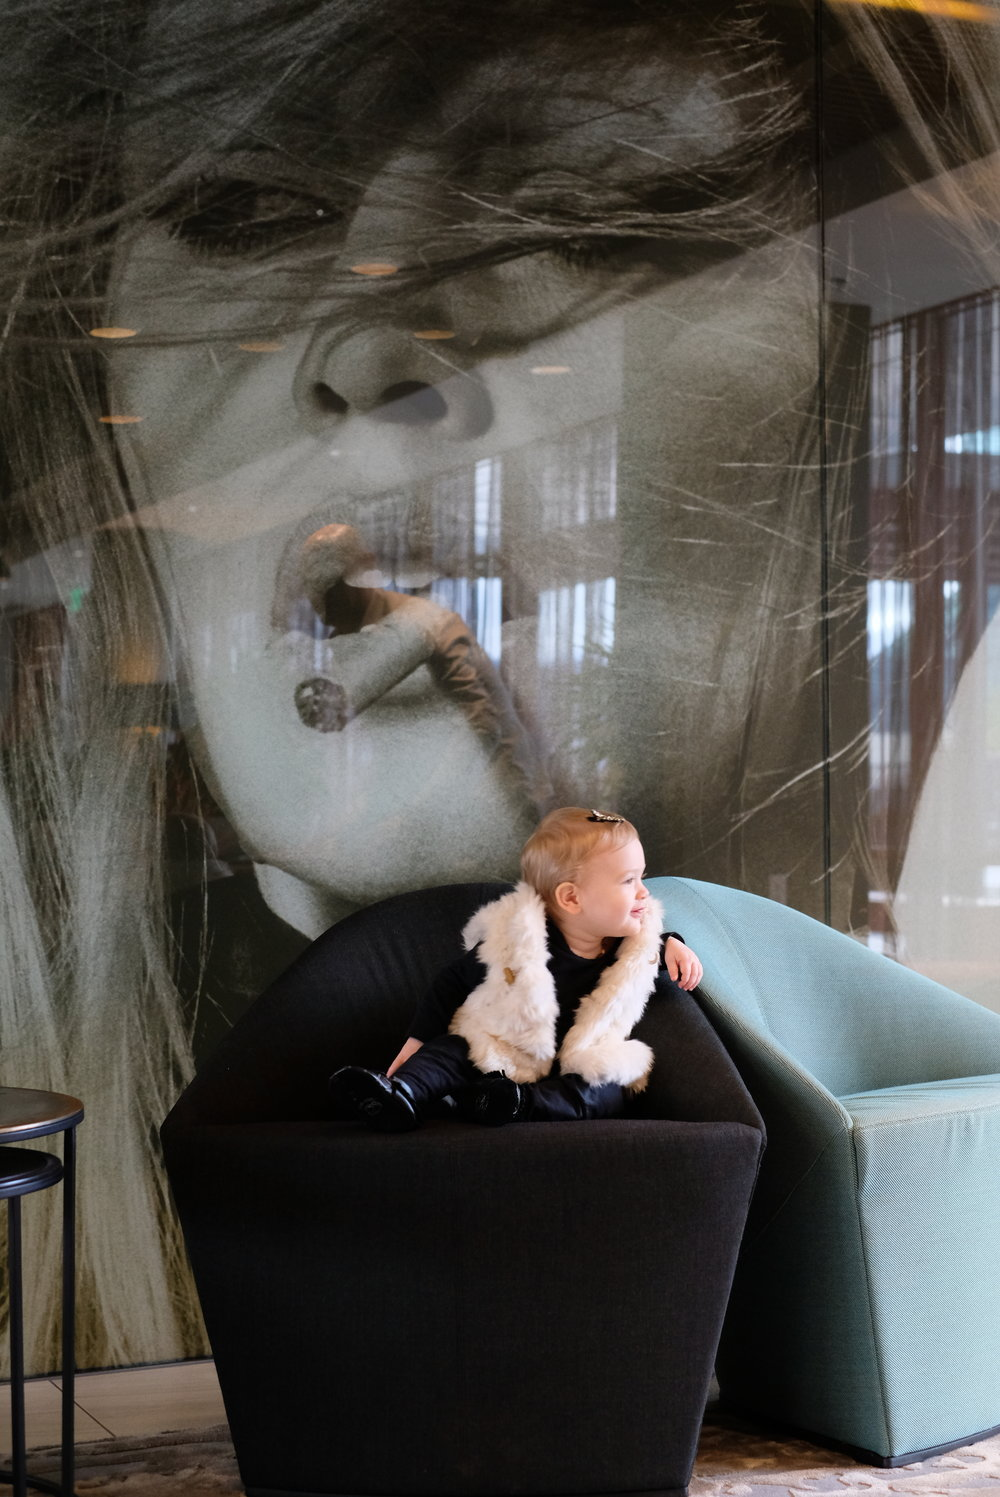 Brigitte Bardot portrait at Hotel Eastlund, Portland, OR | Birthday Getaway | by Totes and the City